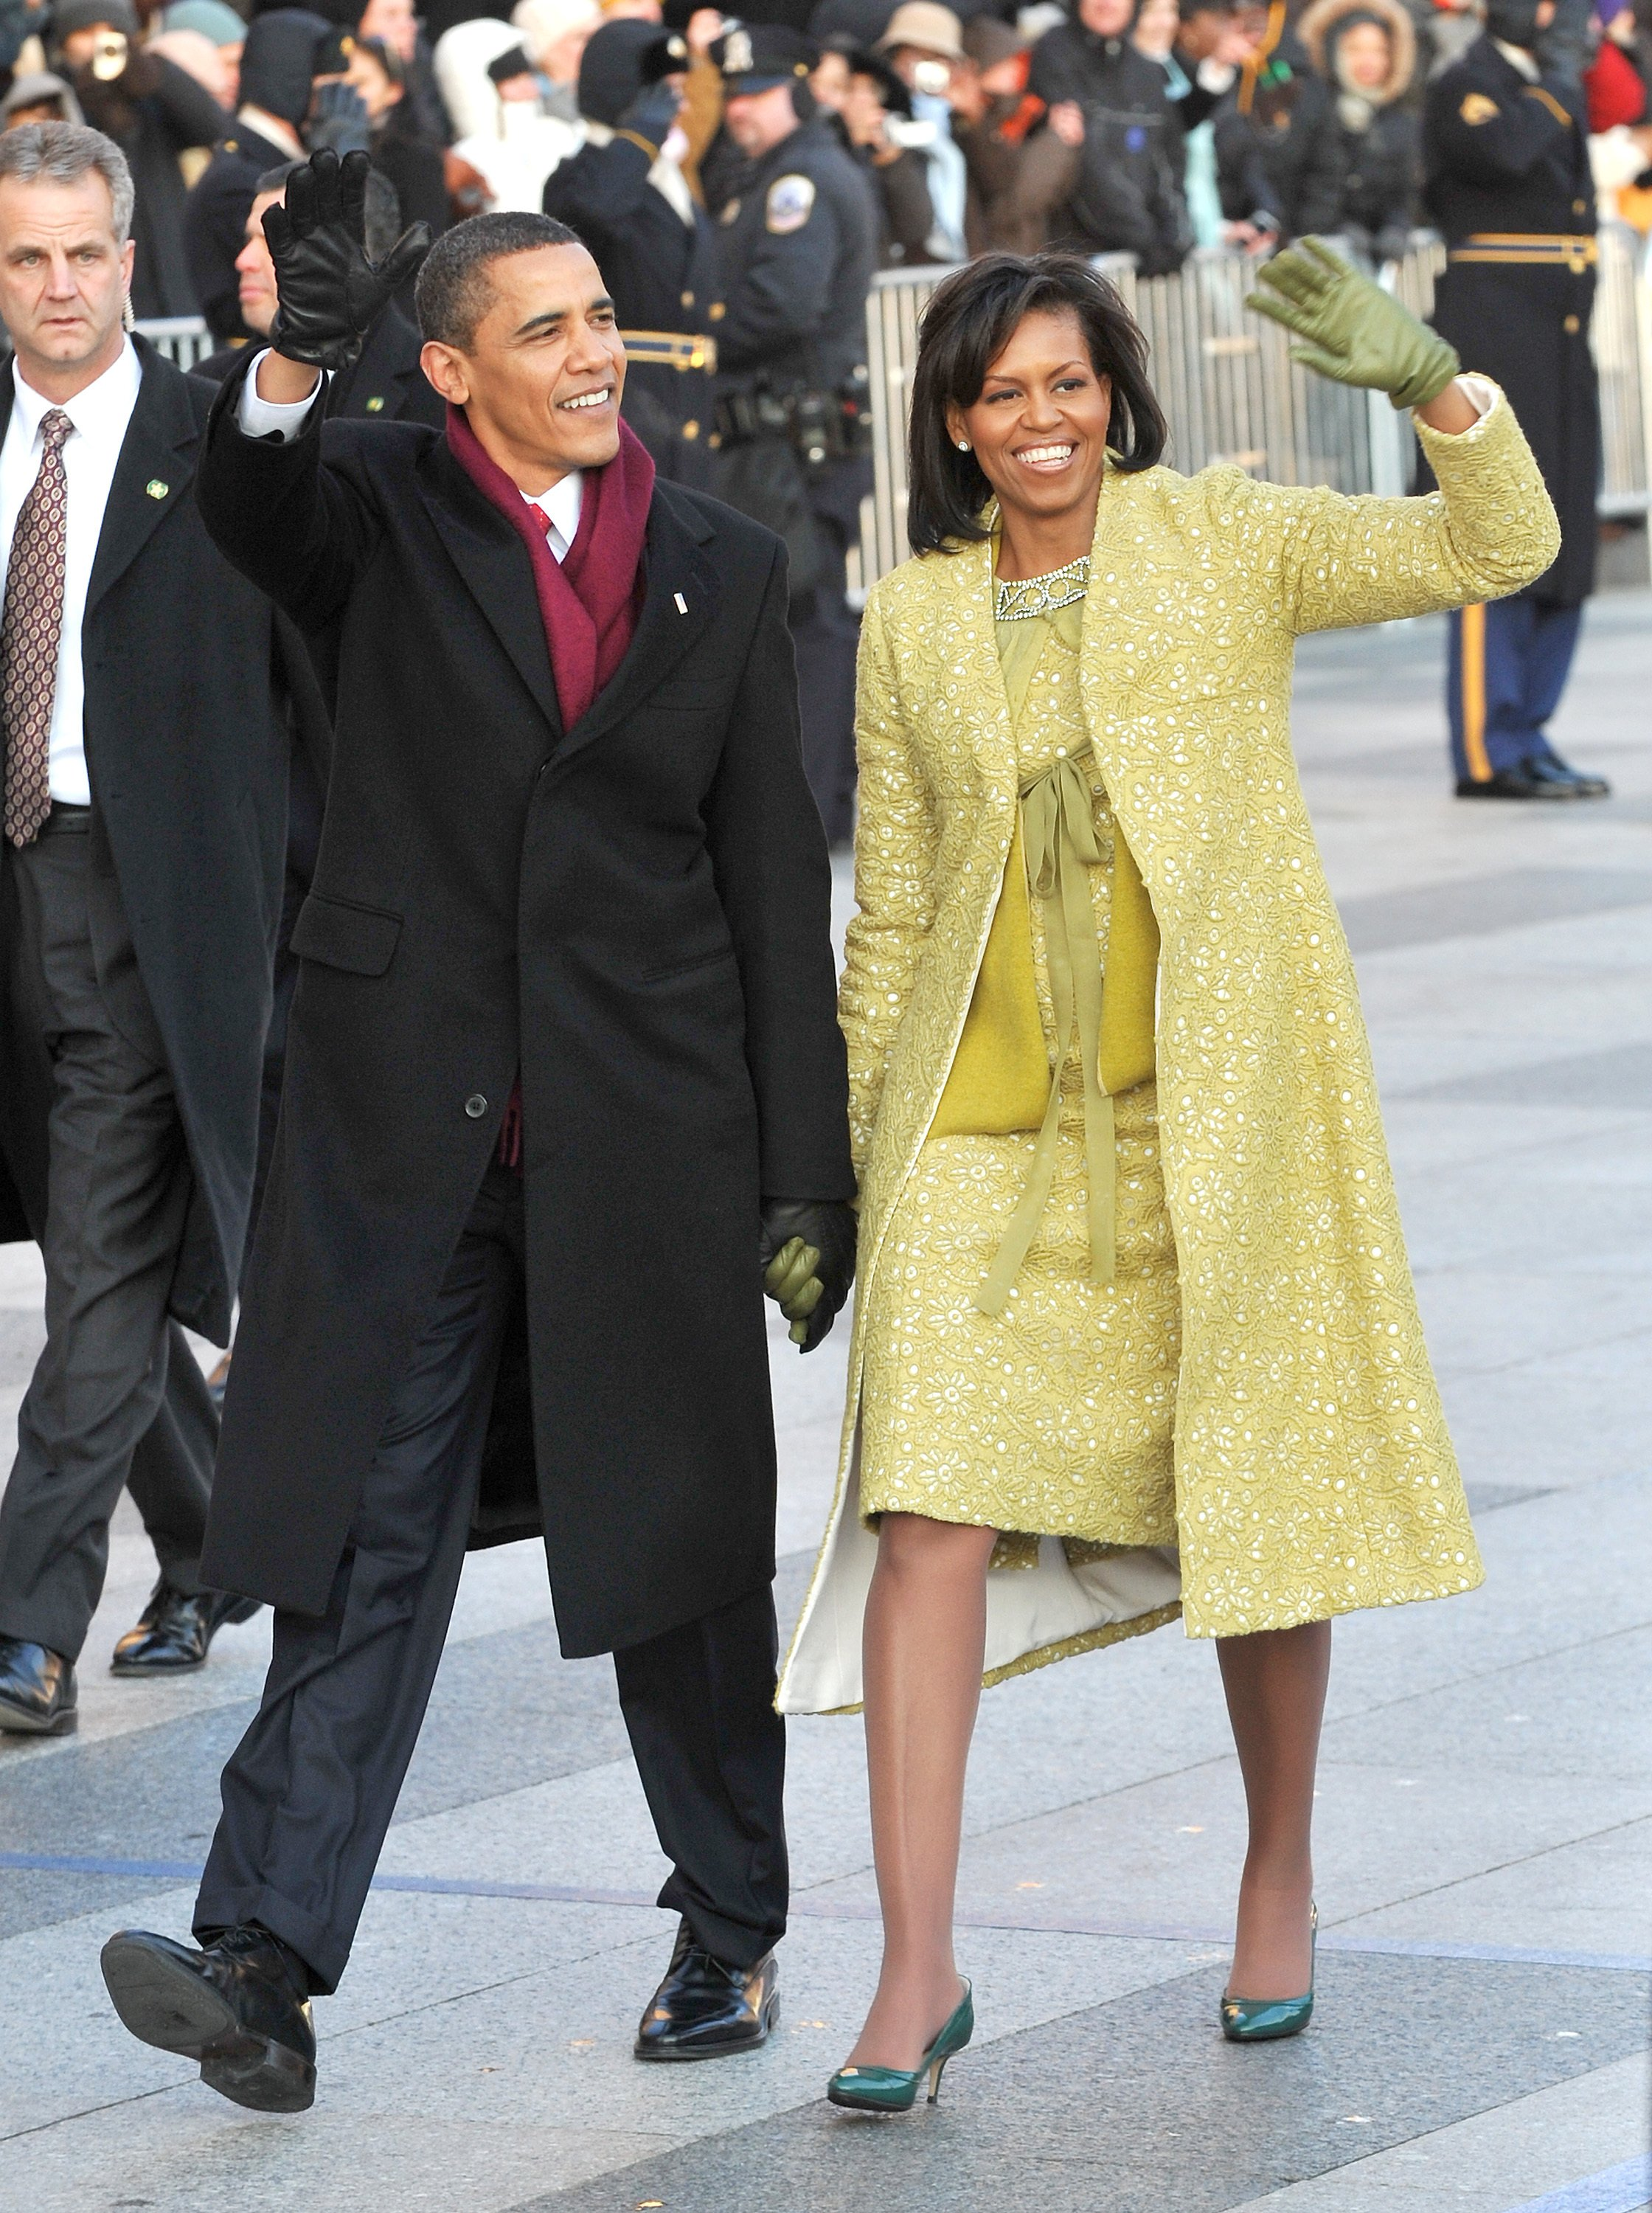 Michelle and Barack Obama partaking in the Inaugural Parade in Washington DC in January 2009. | Photo: Getty Images.